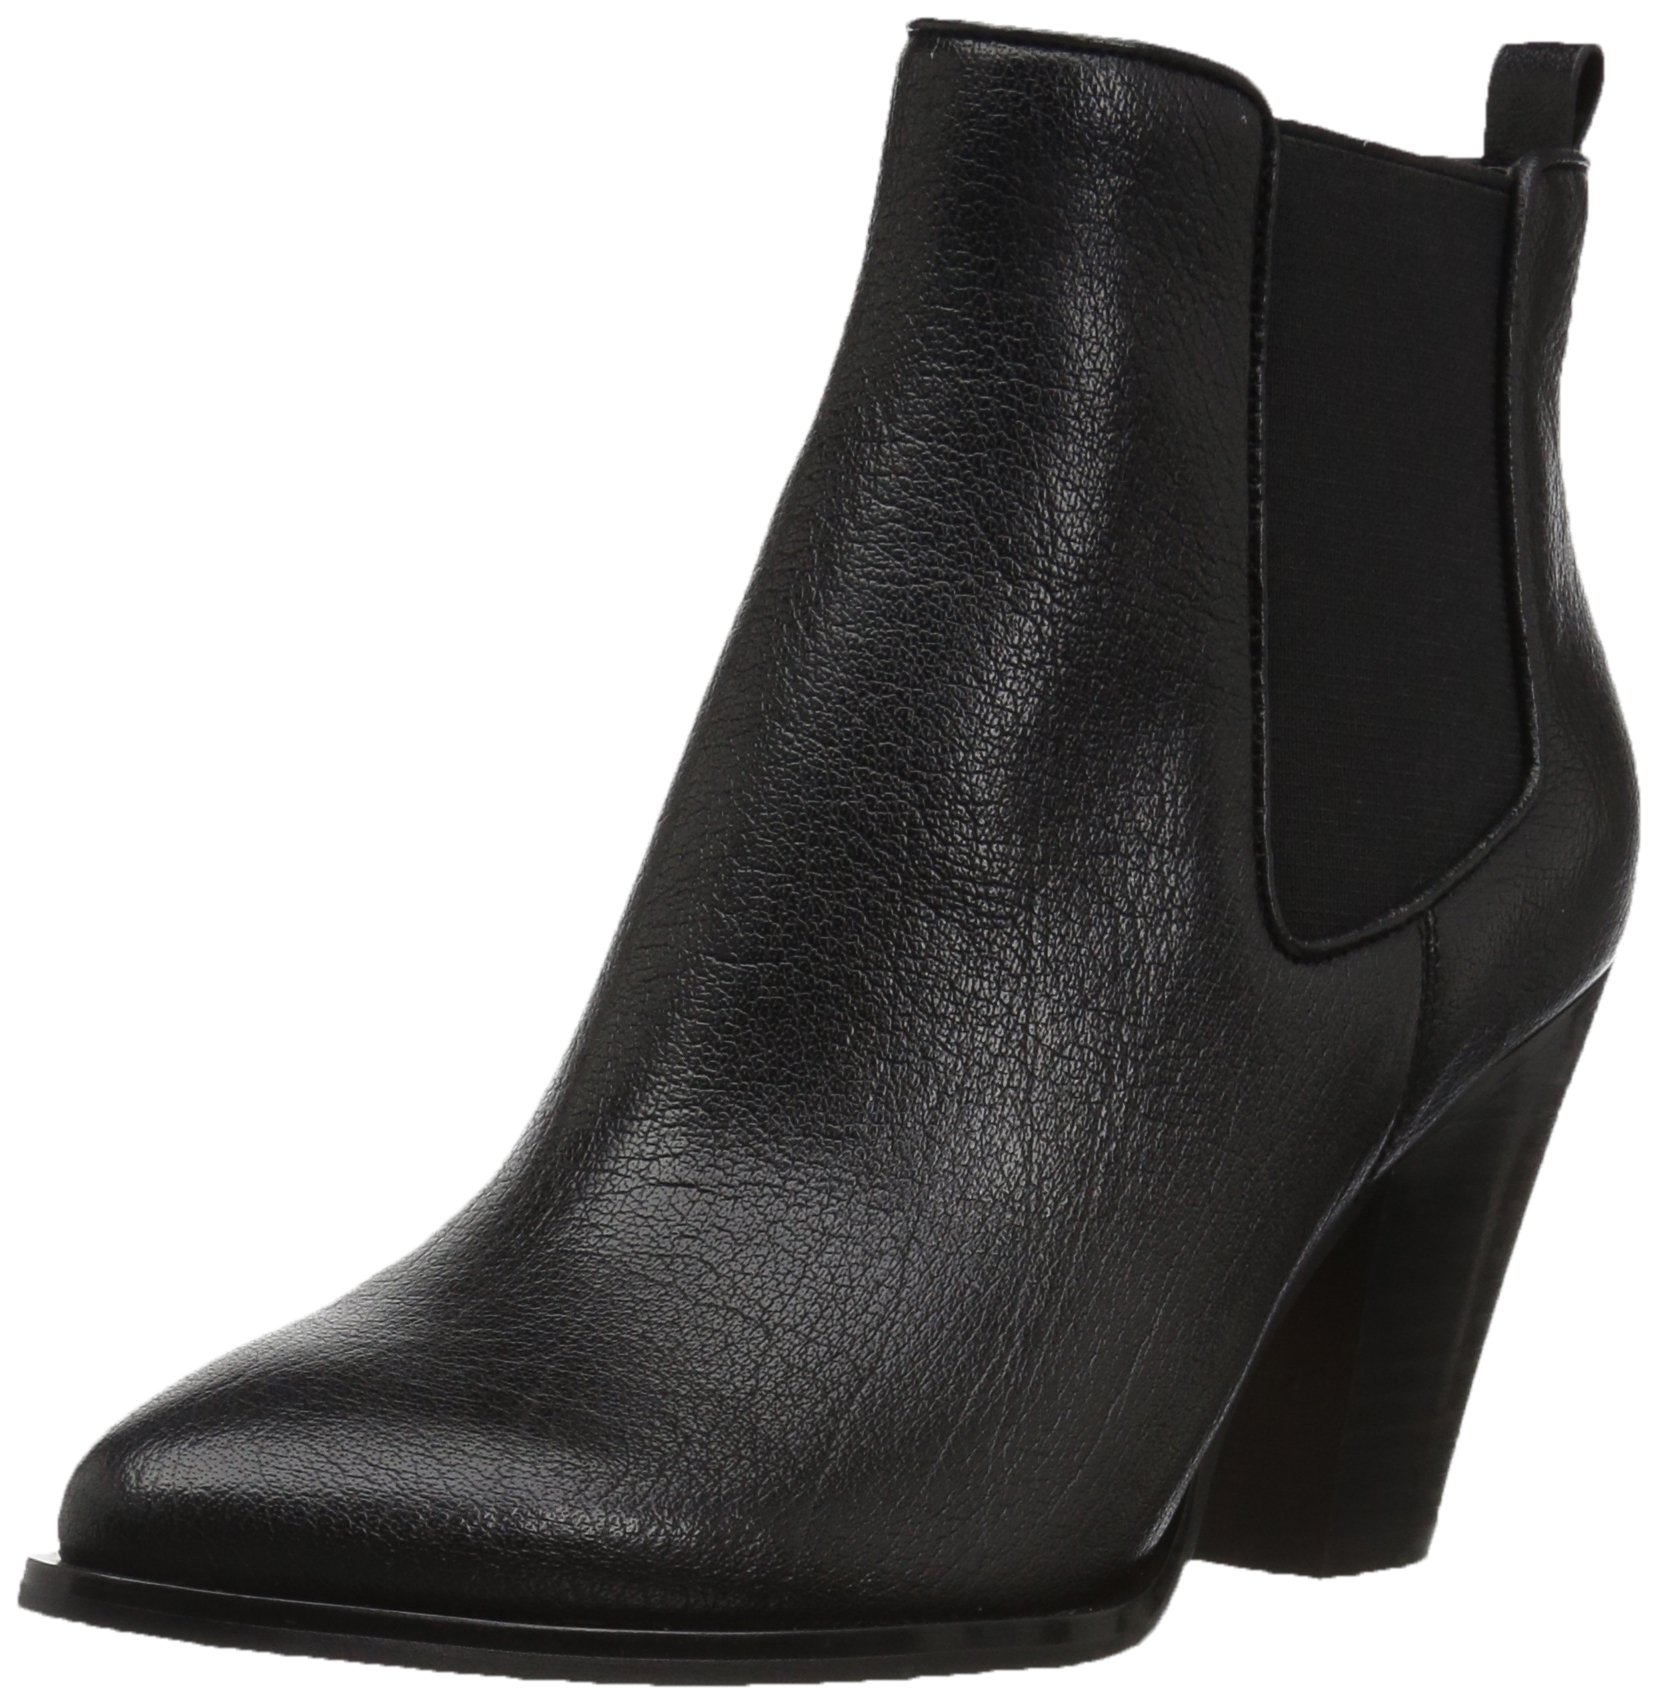 The Fix Women's Joelle Cowboy Style Ankle Boot, Black, 9 B US by The Fix